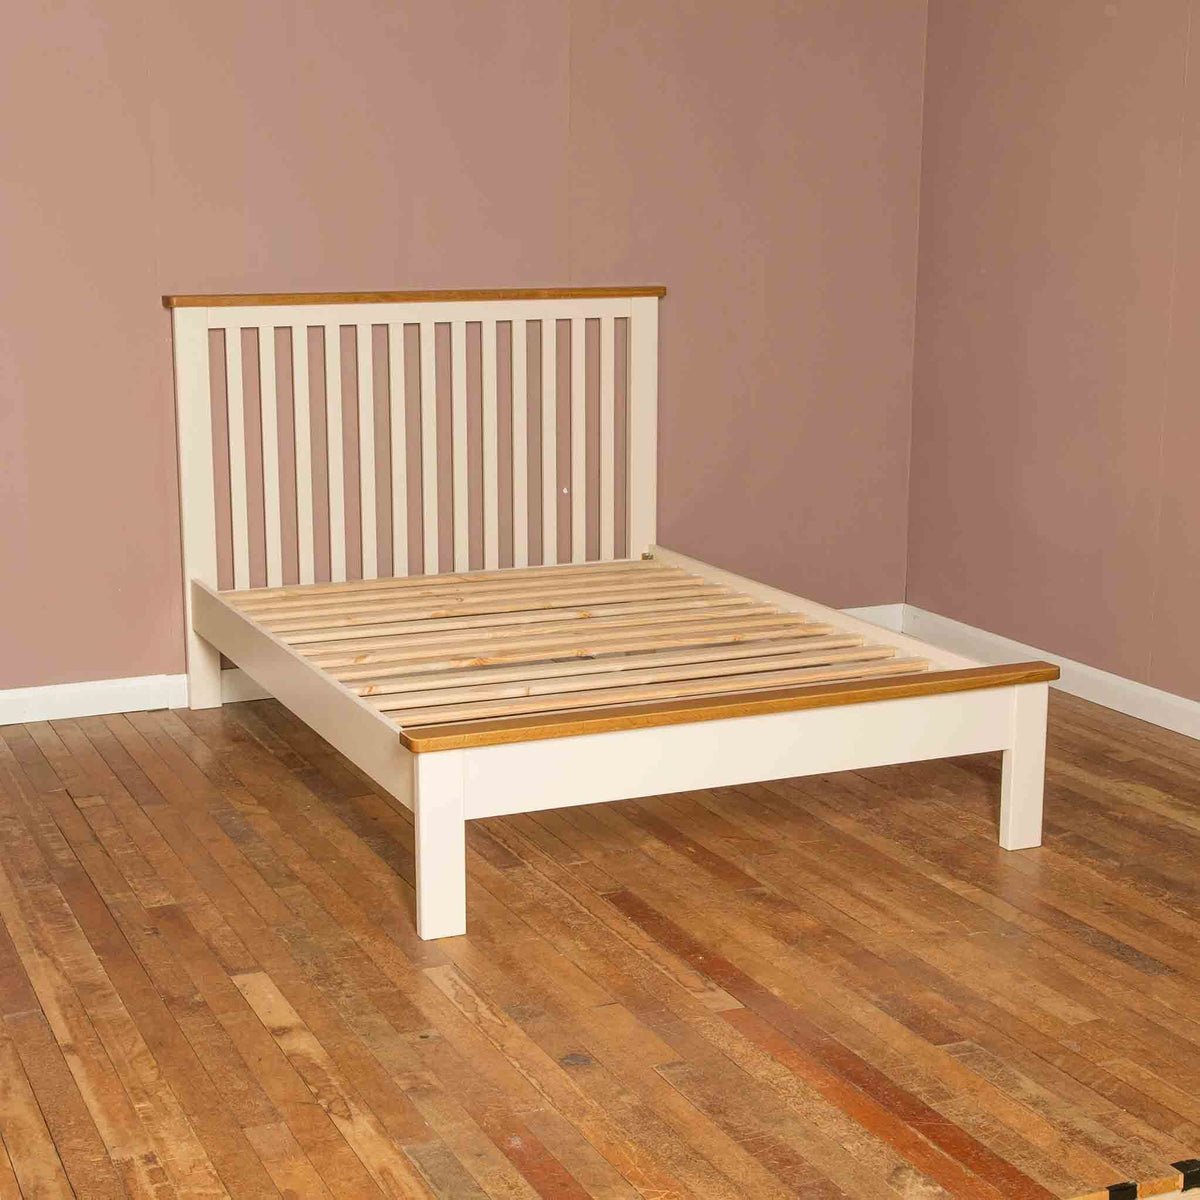 Side view of The Padstow Cream 4 ft 6 Wooden Double Bed Frame